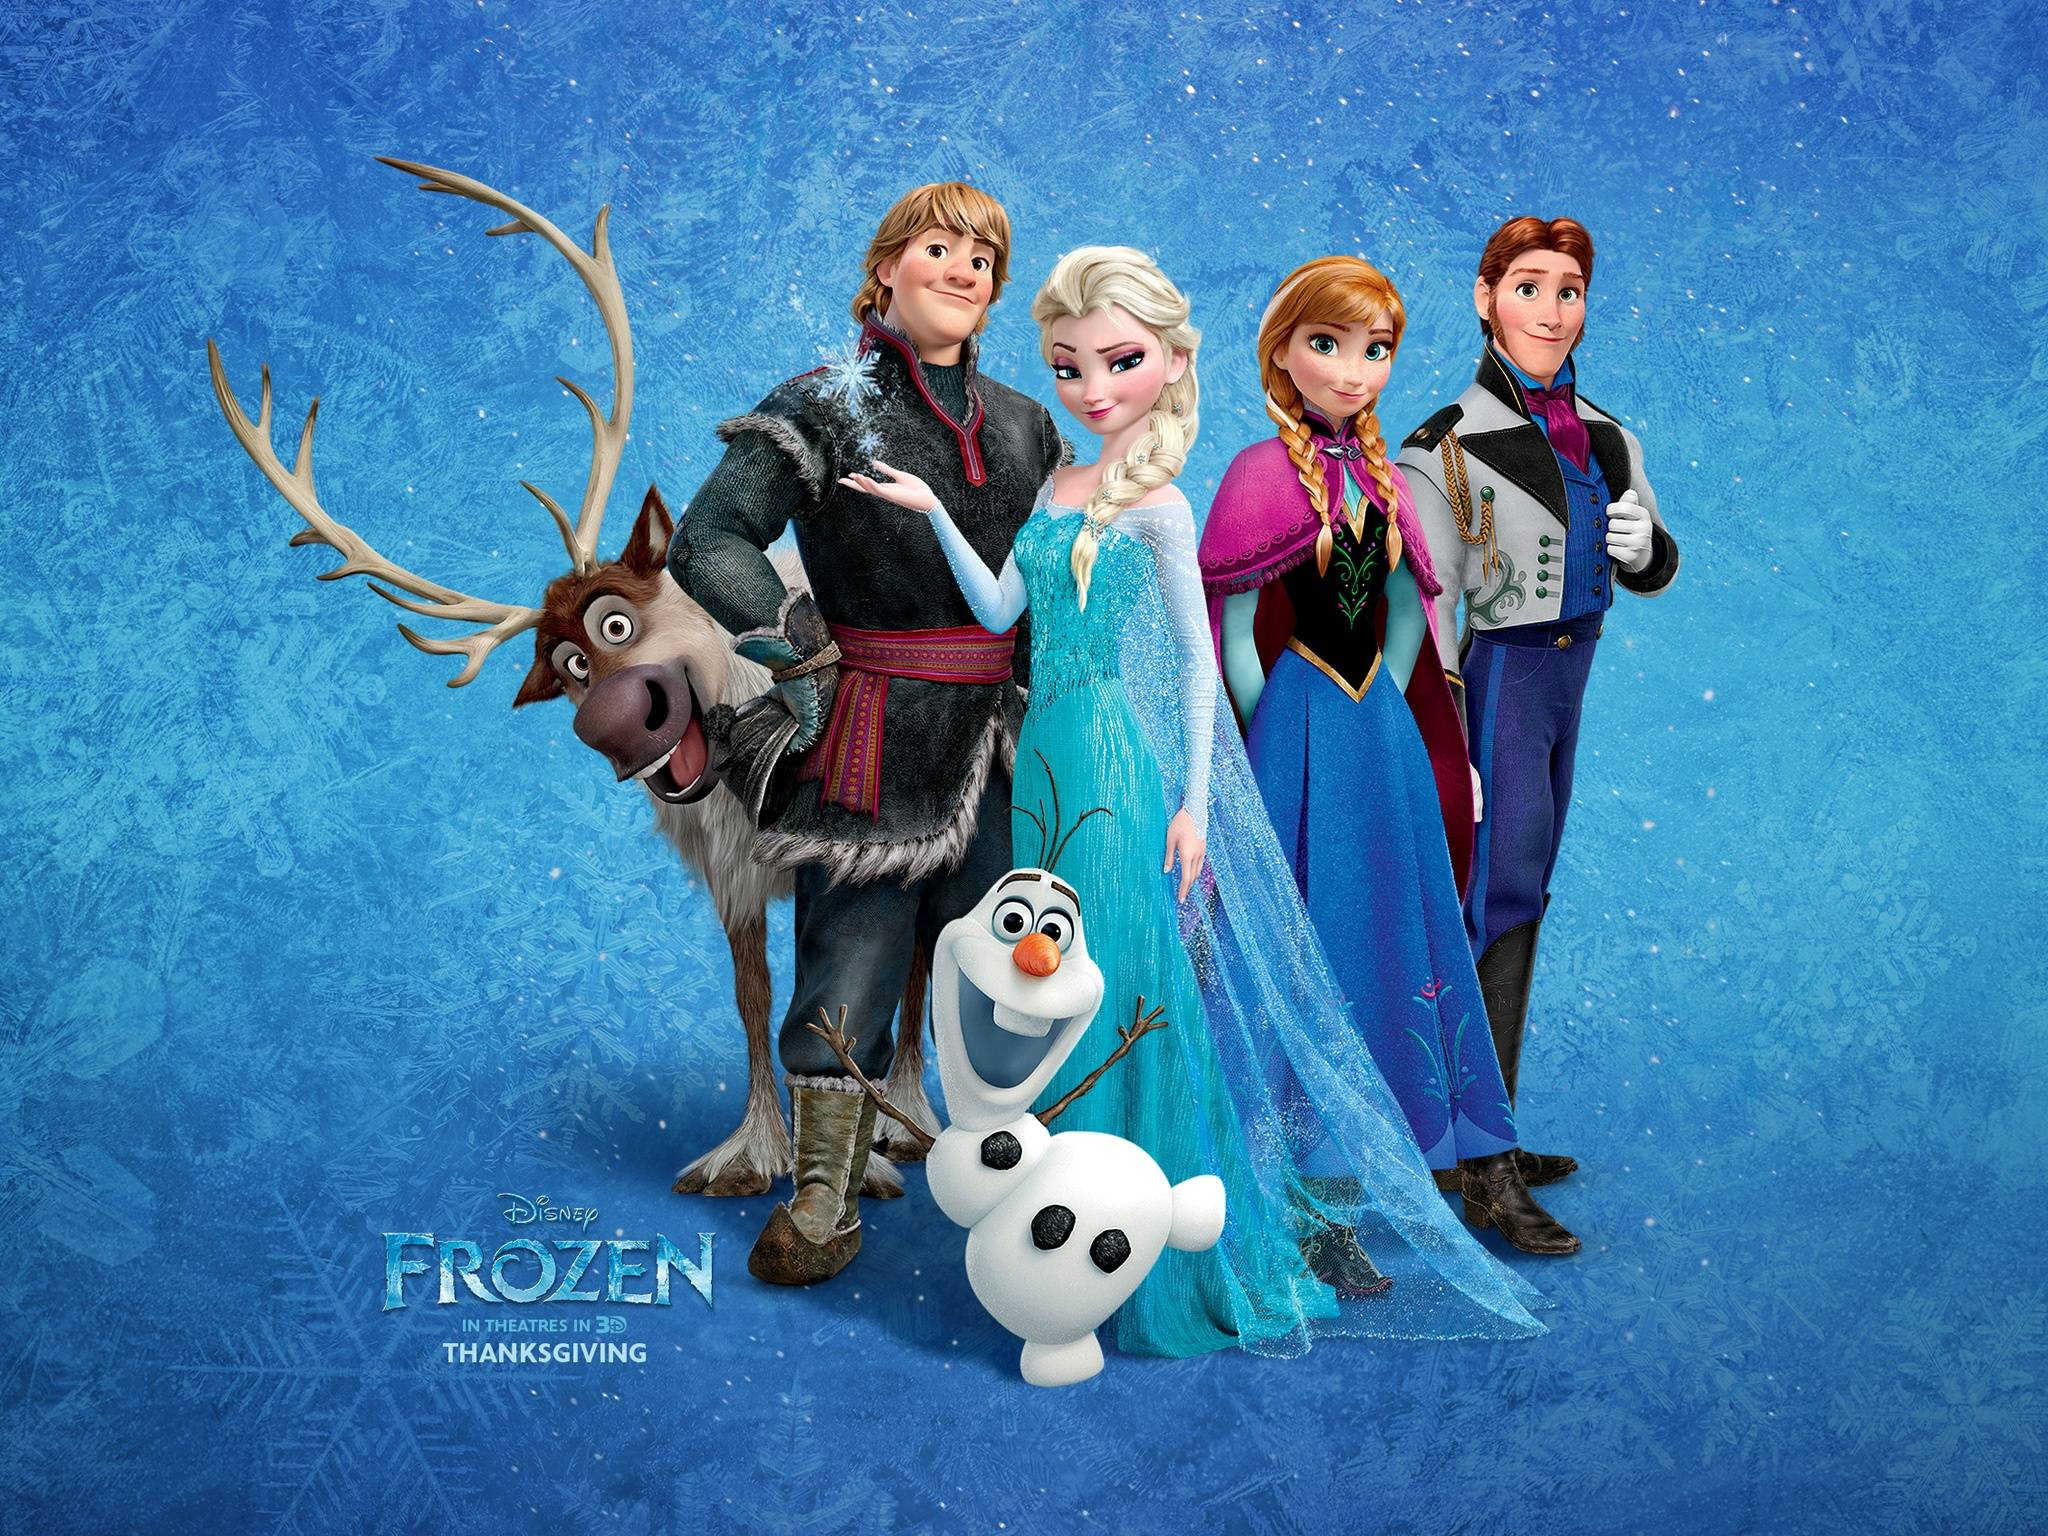 Frozen Wallpaper Wallpaper for Frozen Frozen is a 2013 2048x1536